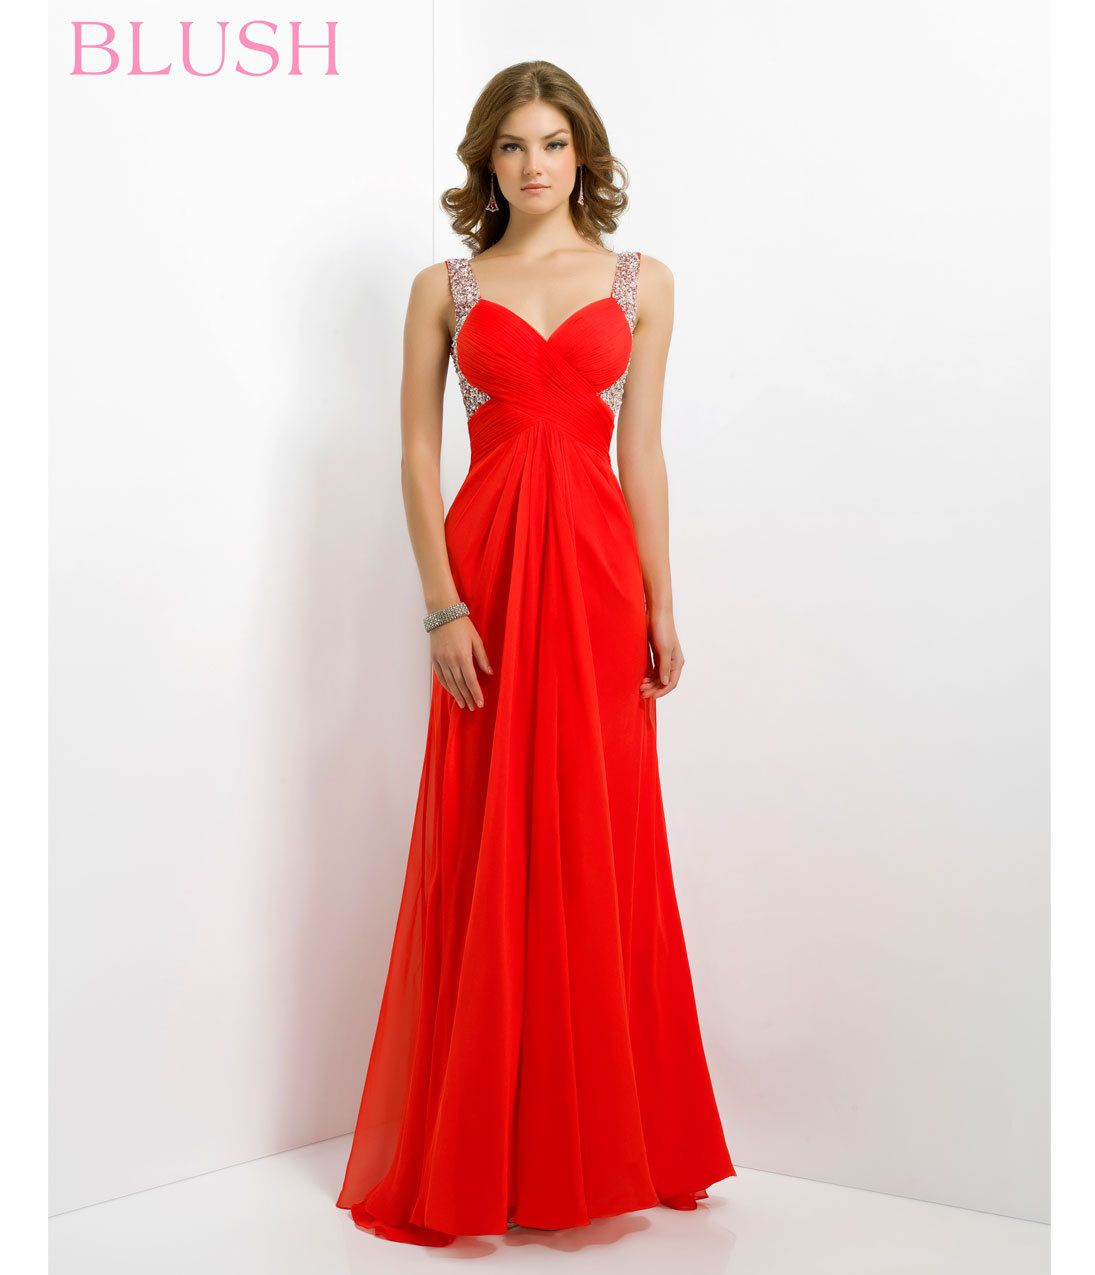 Prom Dresses 2014: Be A Queen For One Night - The Style & Fashion ...